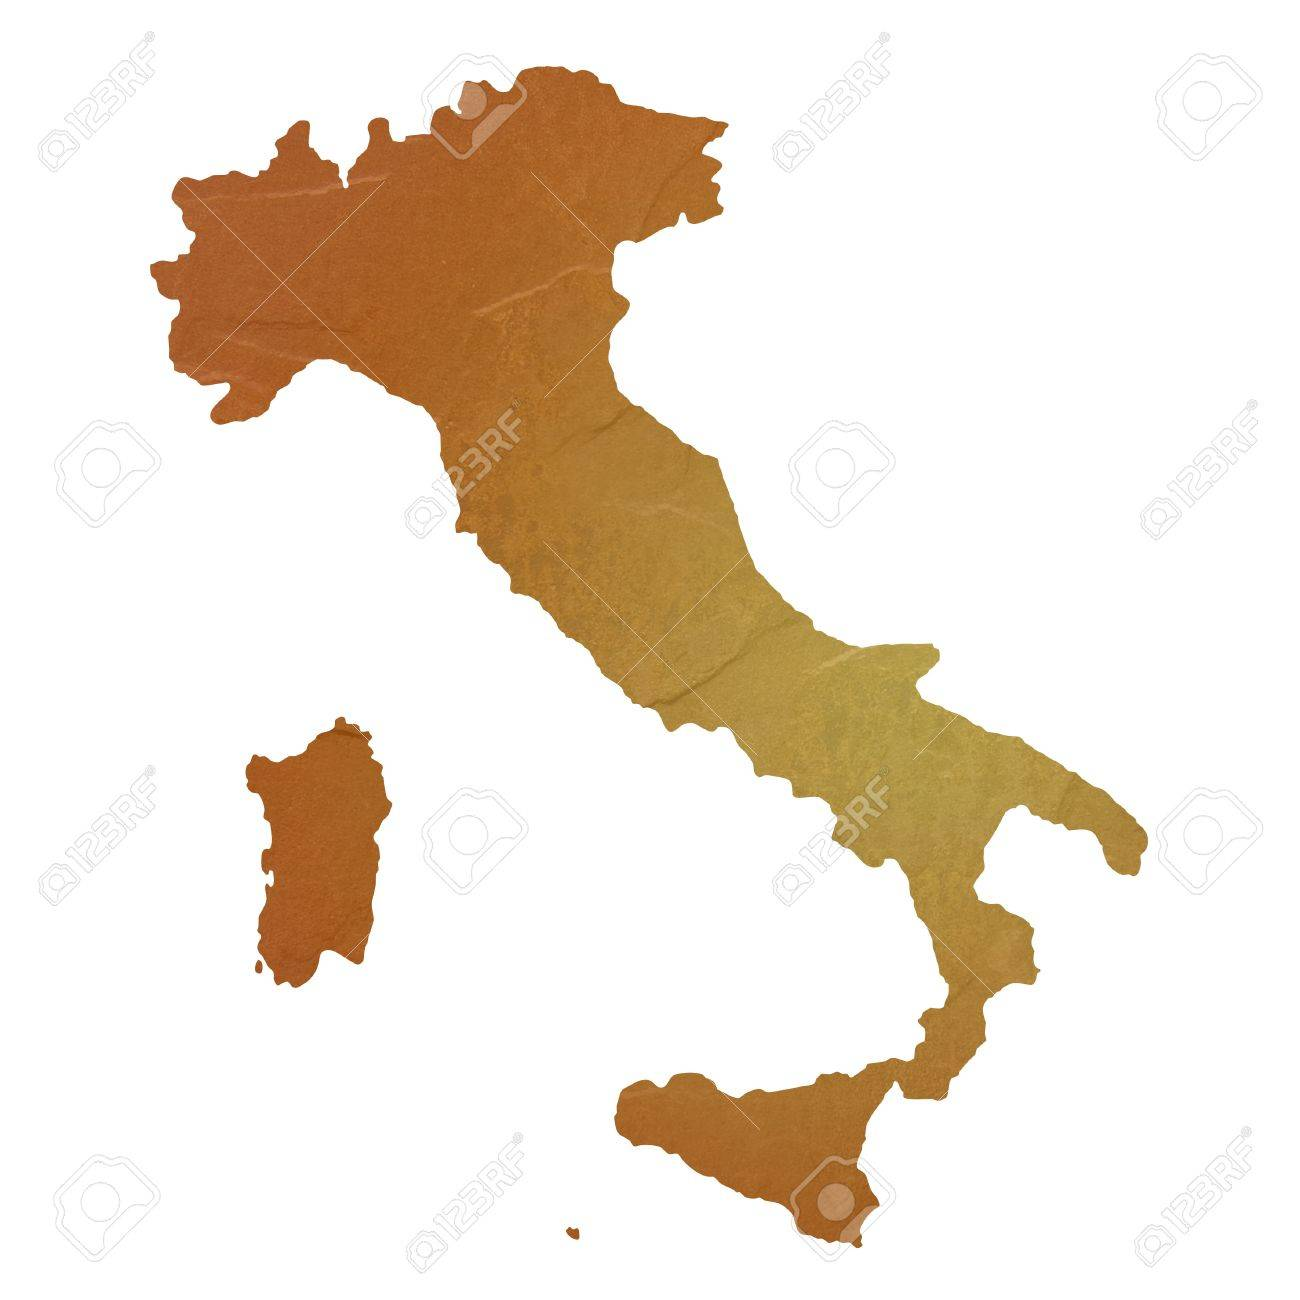 Textured map of Italy map with brown rock or stone texture, isolated on white background - 14742889